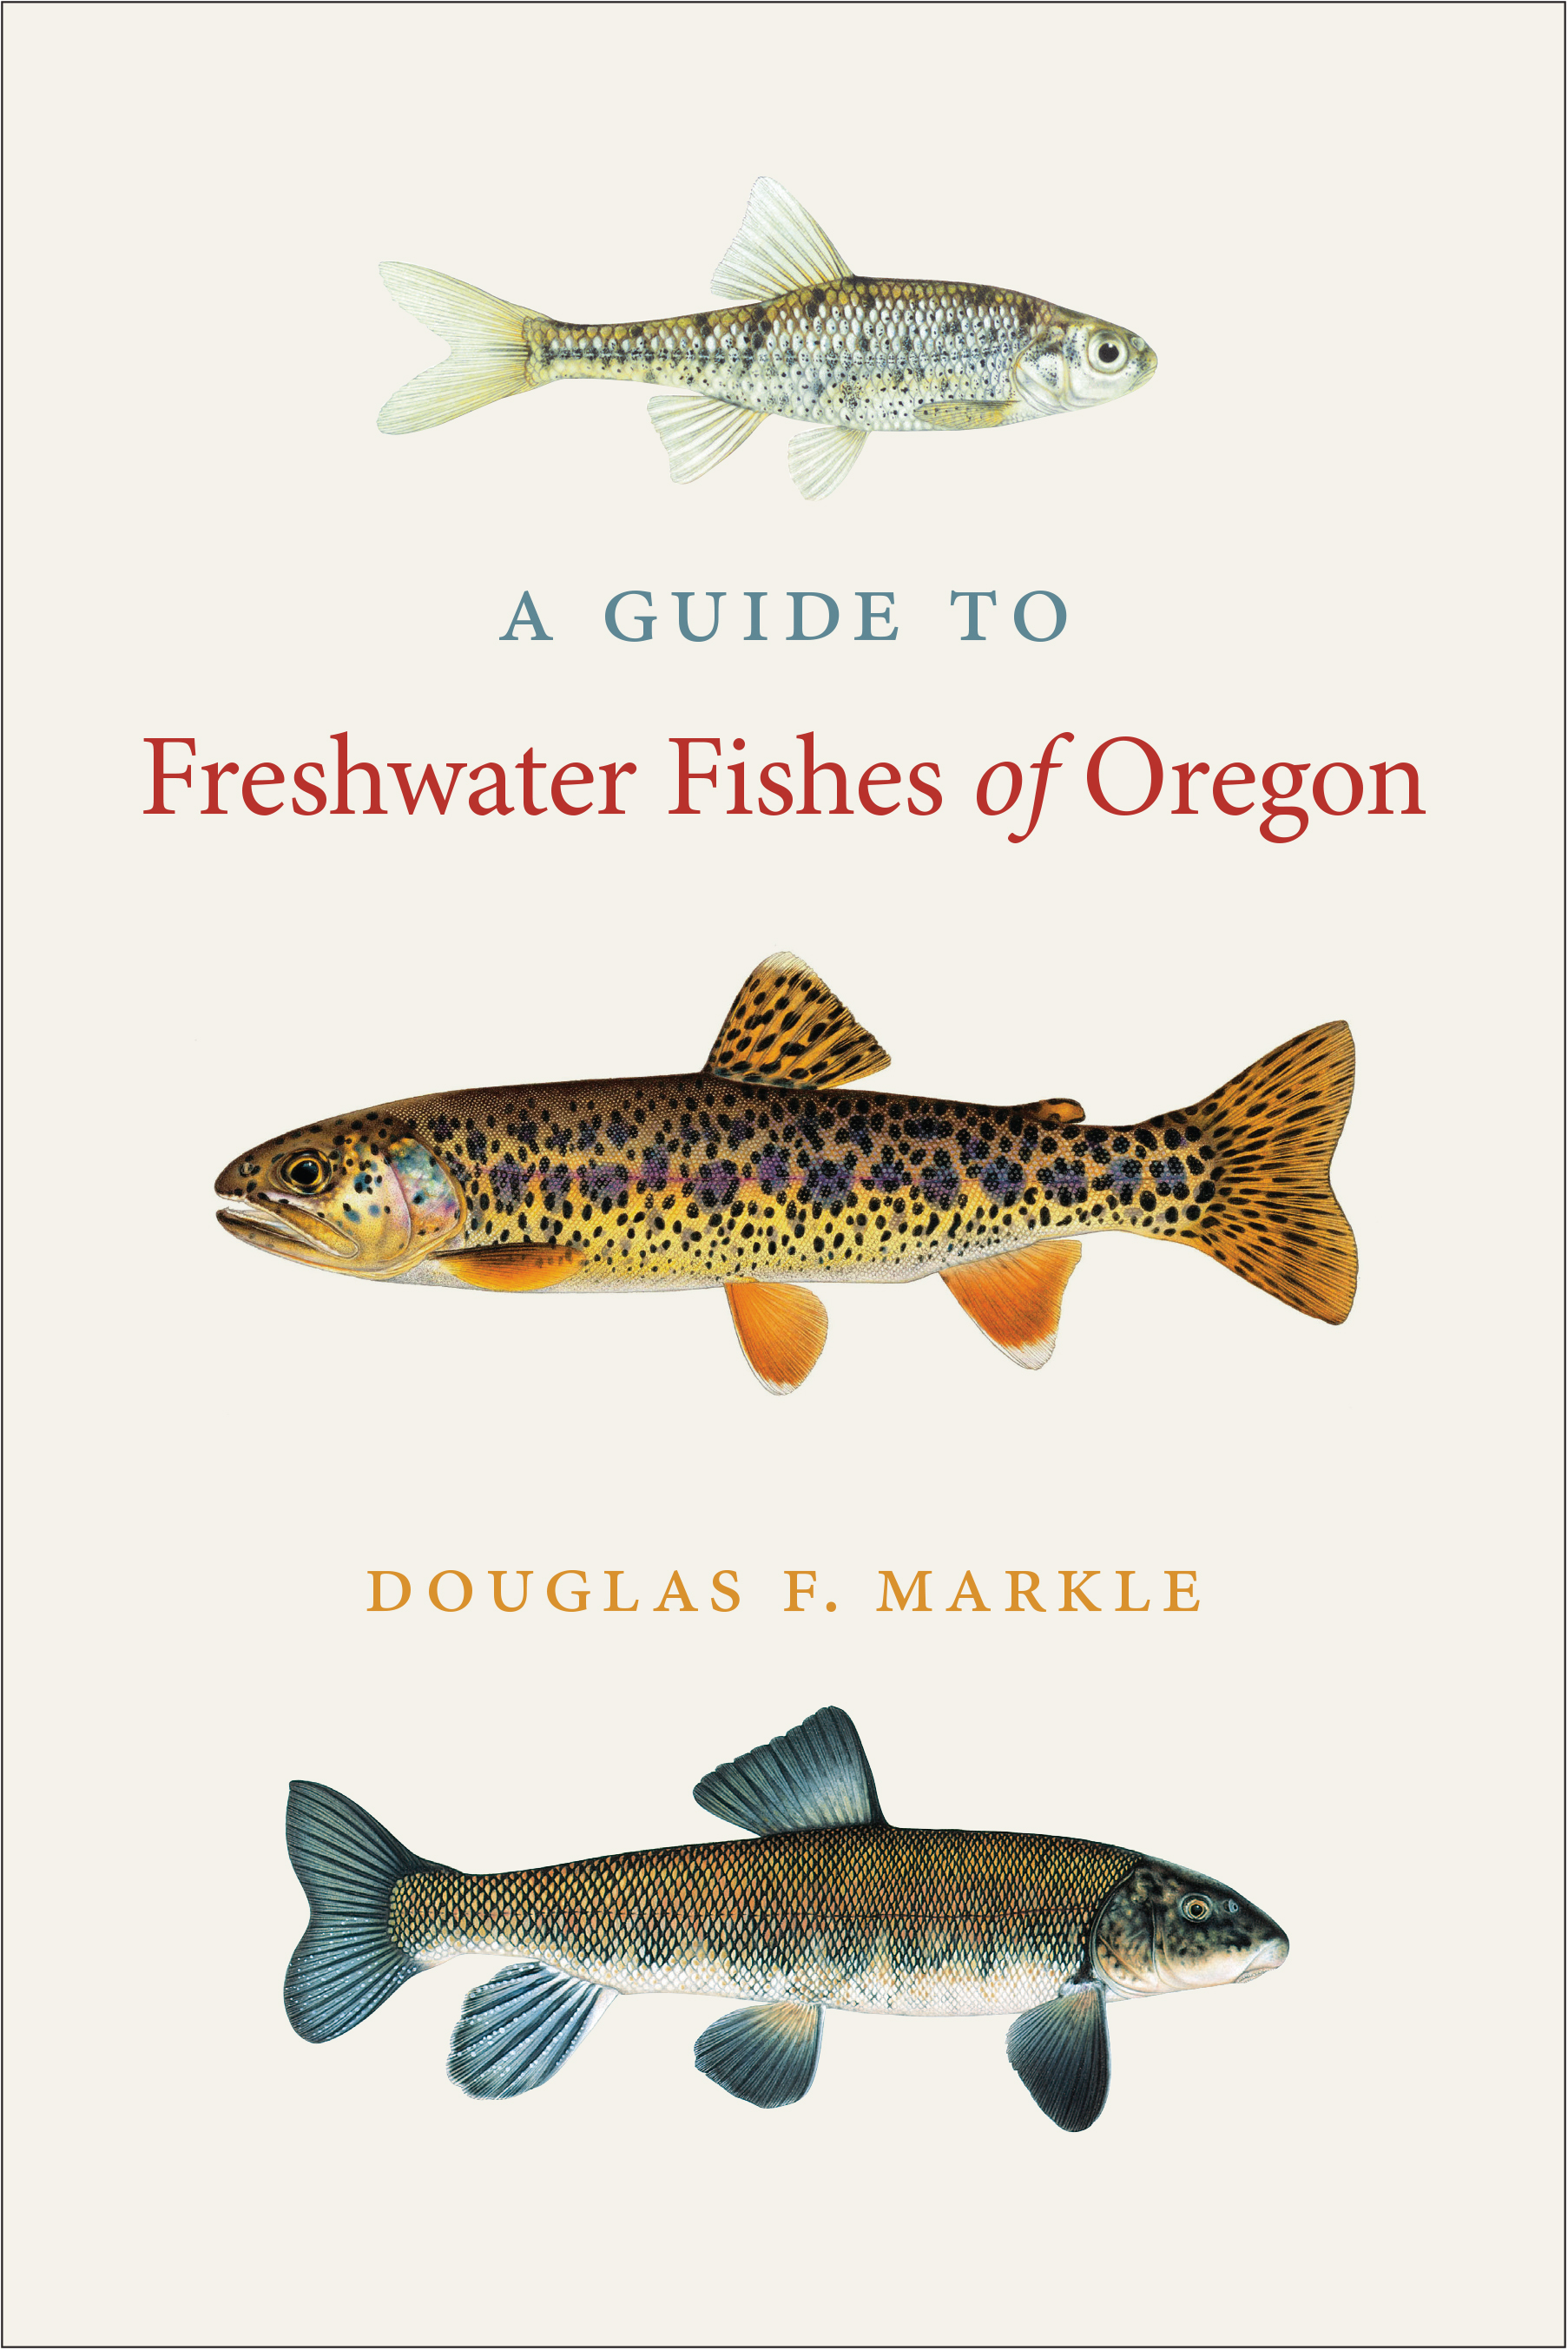 A Guide to Freshwater Fishes of Oregon by Douglas F. Markle